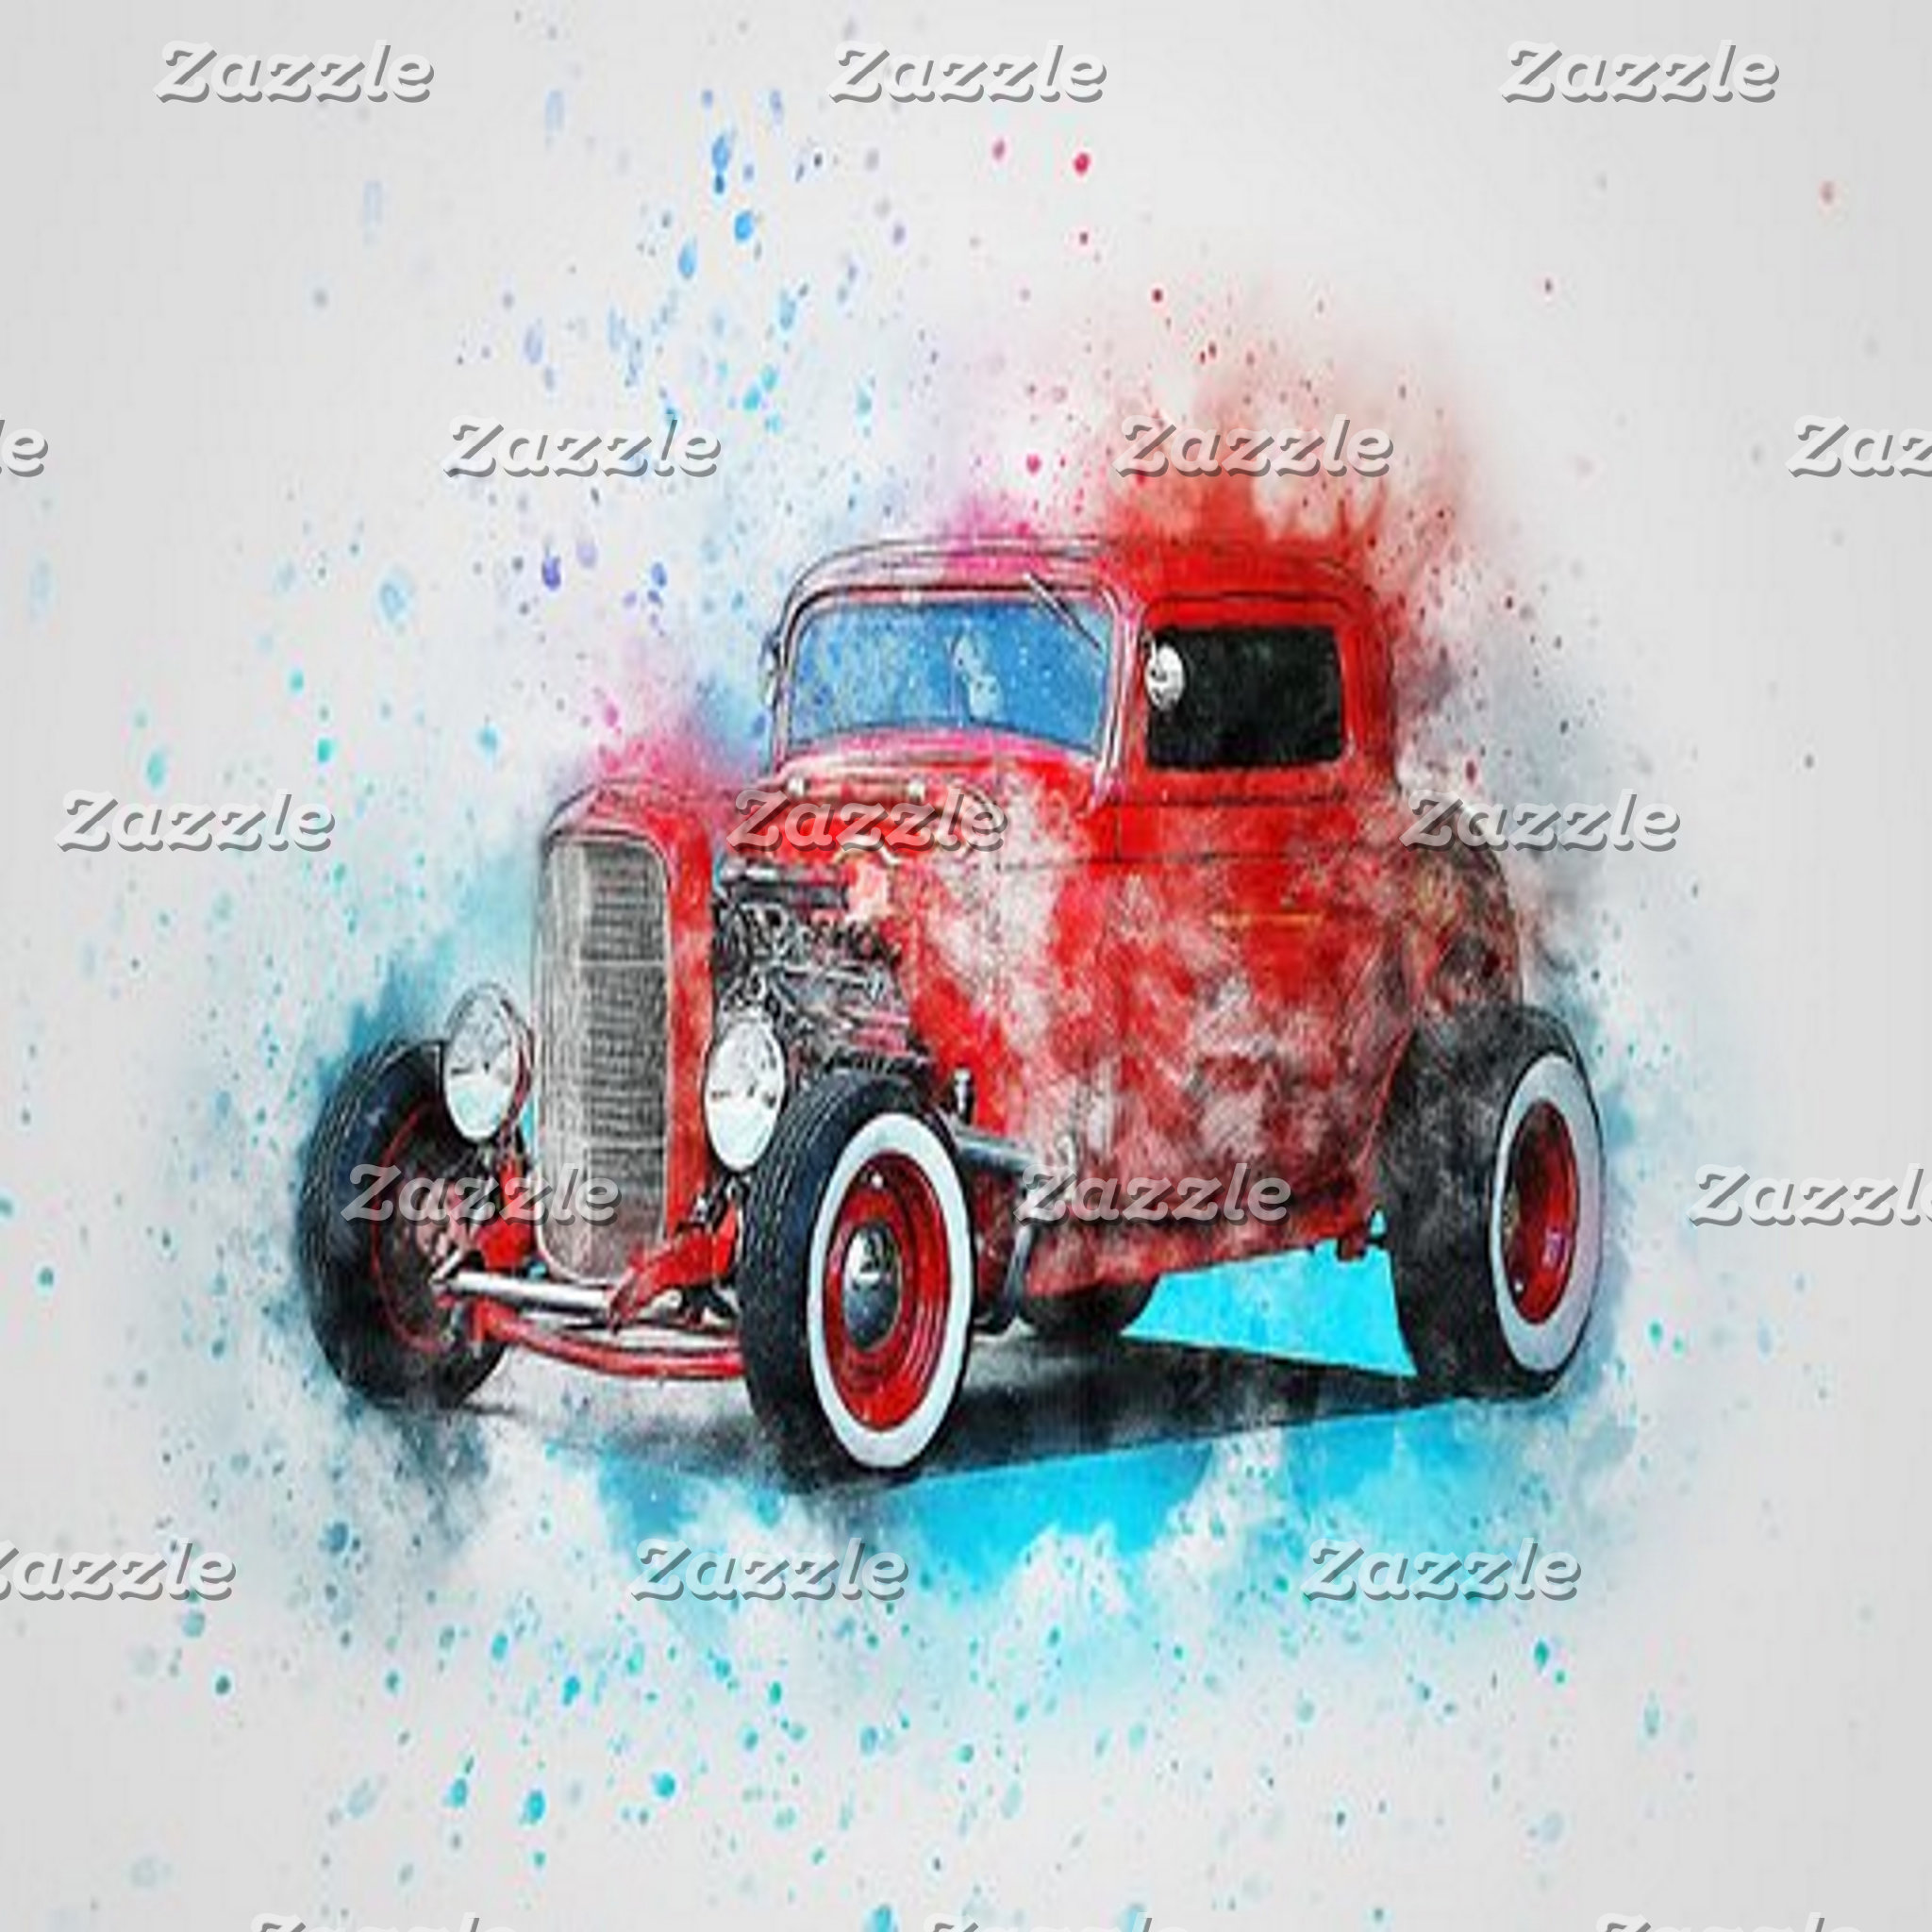 Abstract Art - Old/Vintage Vehicles